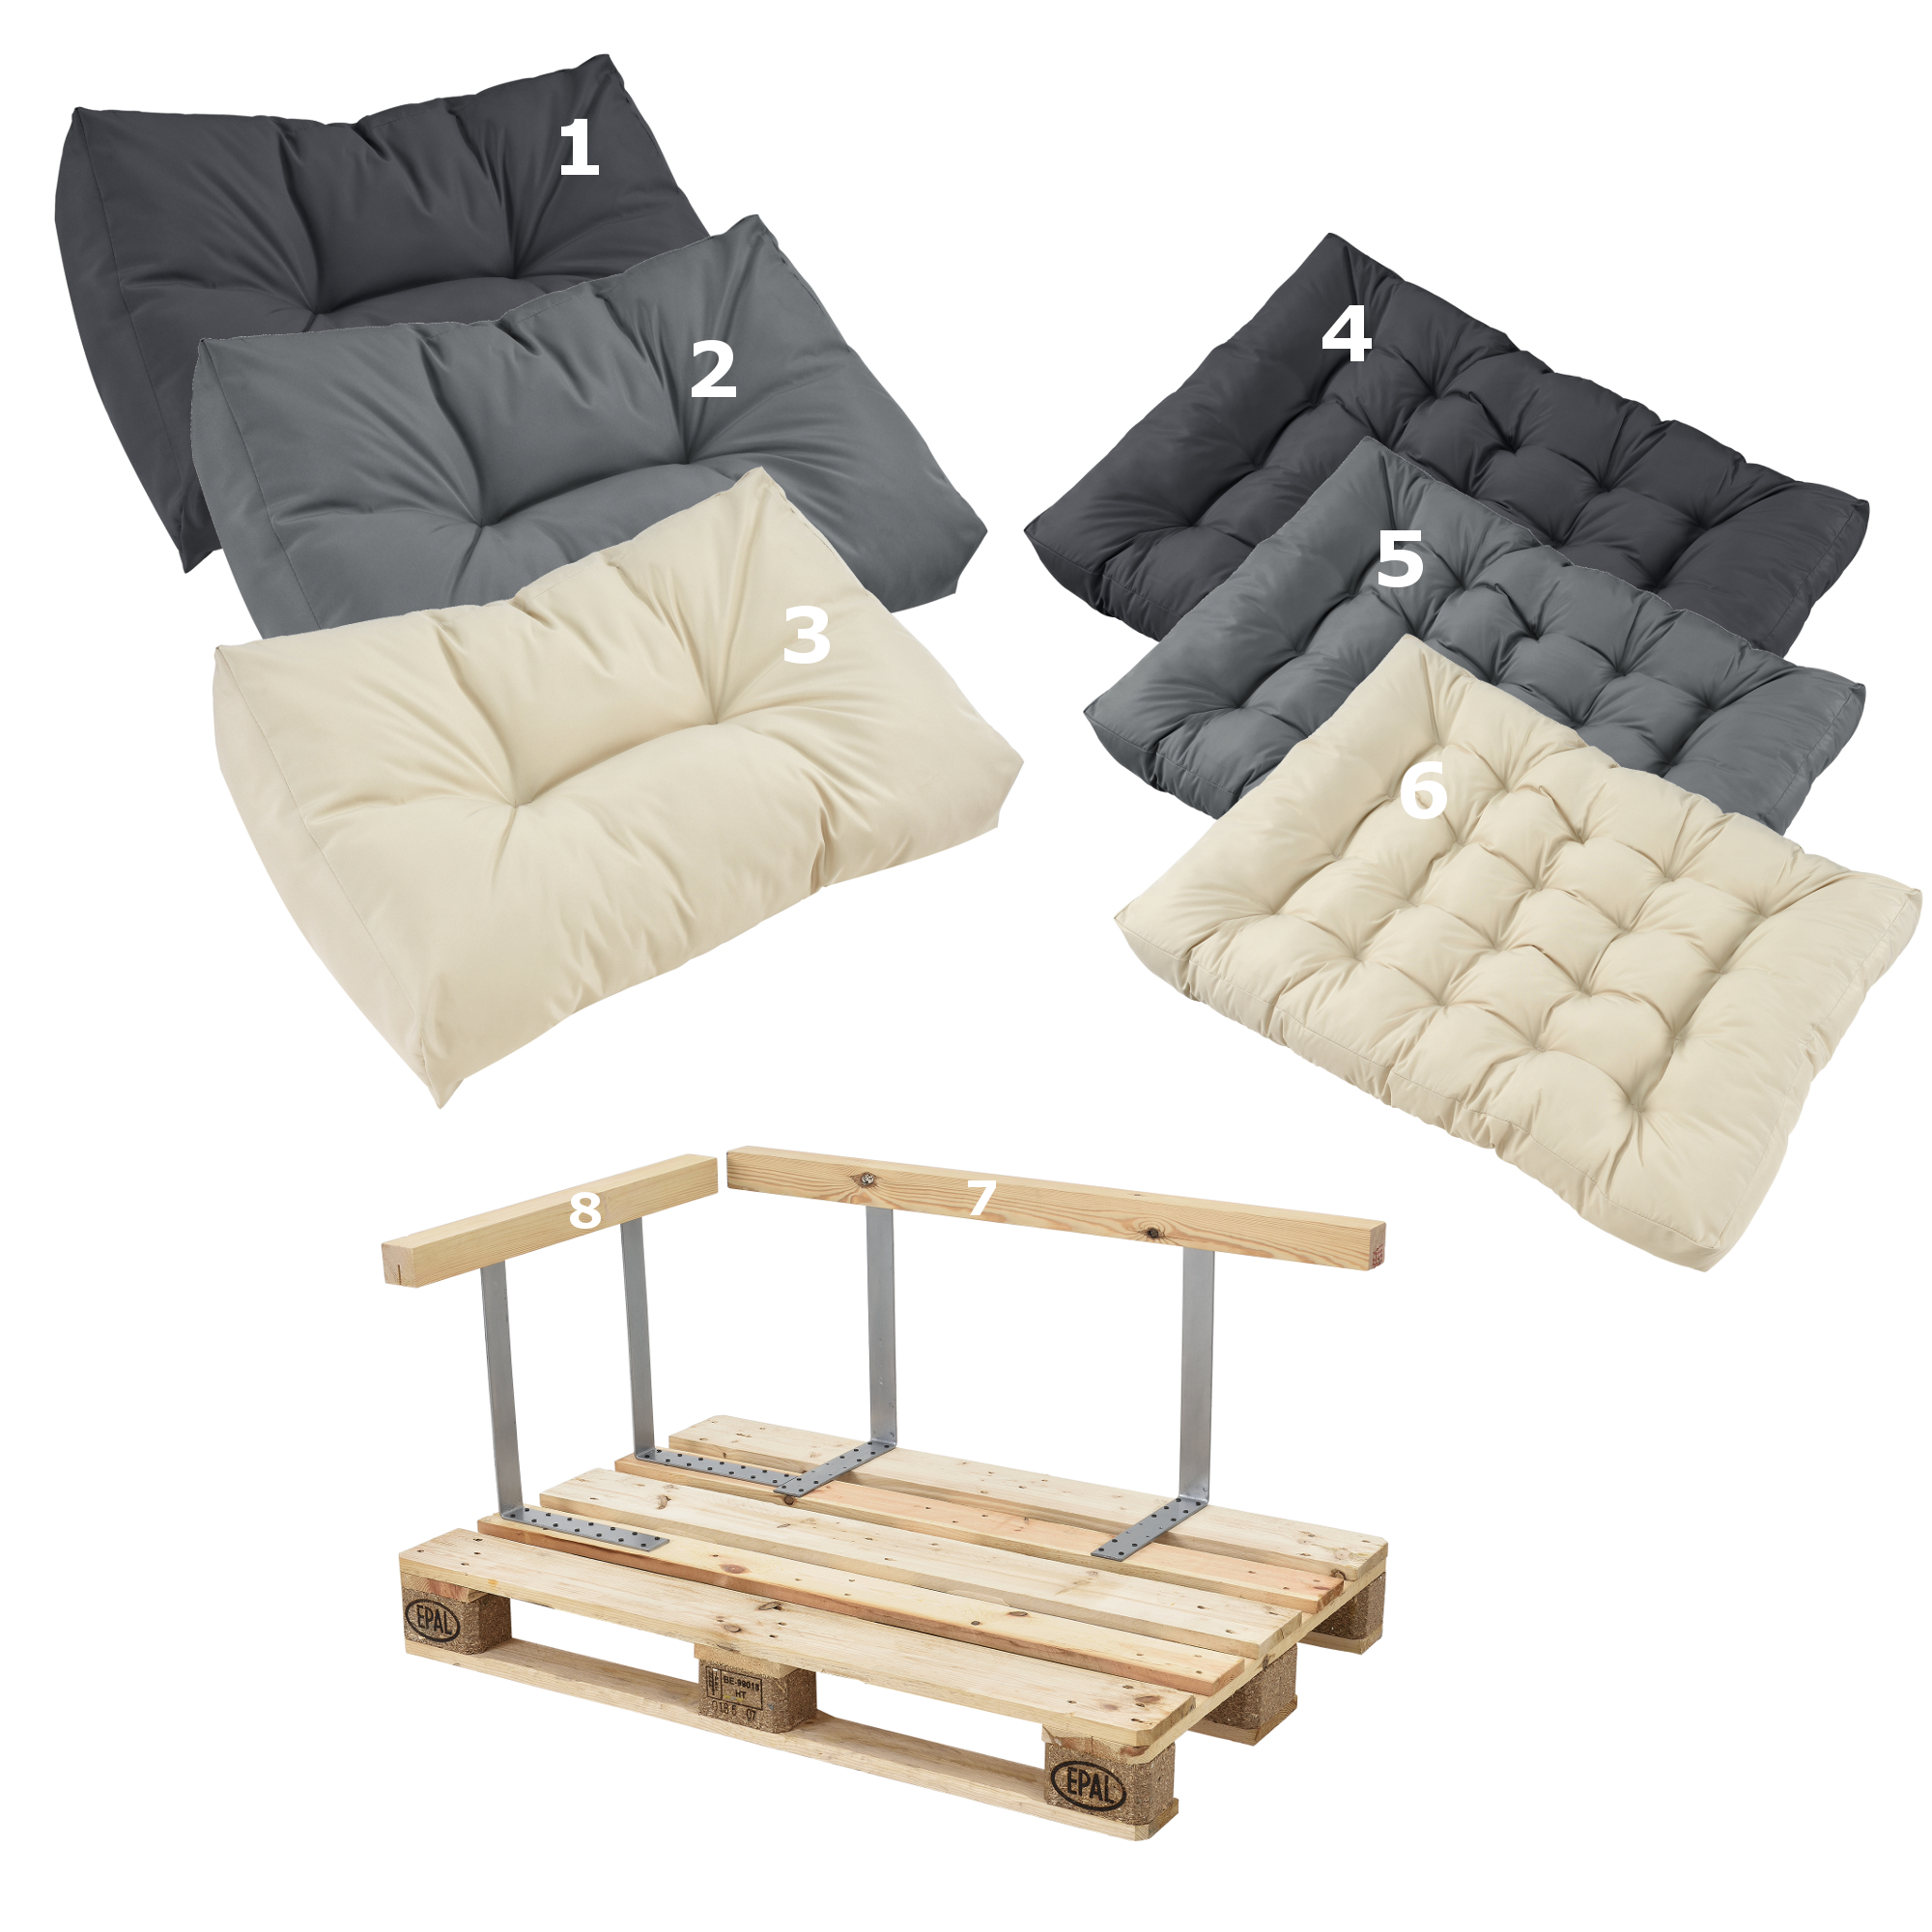 Pallet cushions in outdoor pallets cushion sofa for Sofa de palets exterior